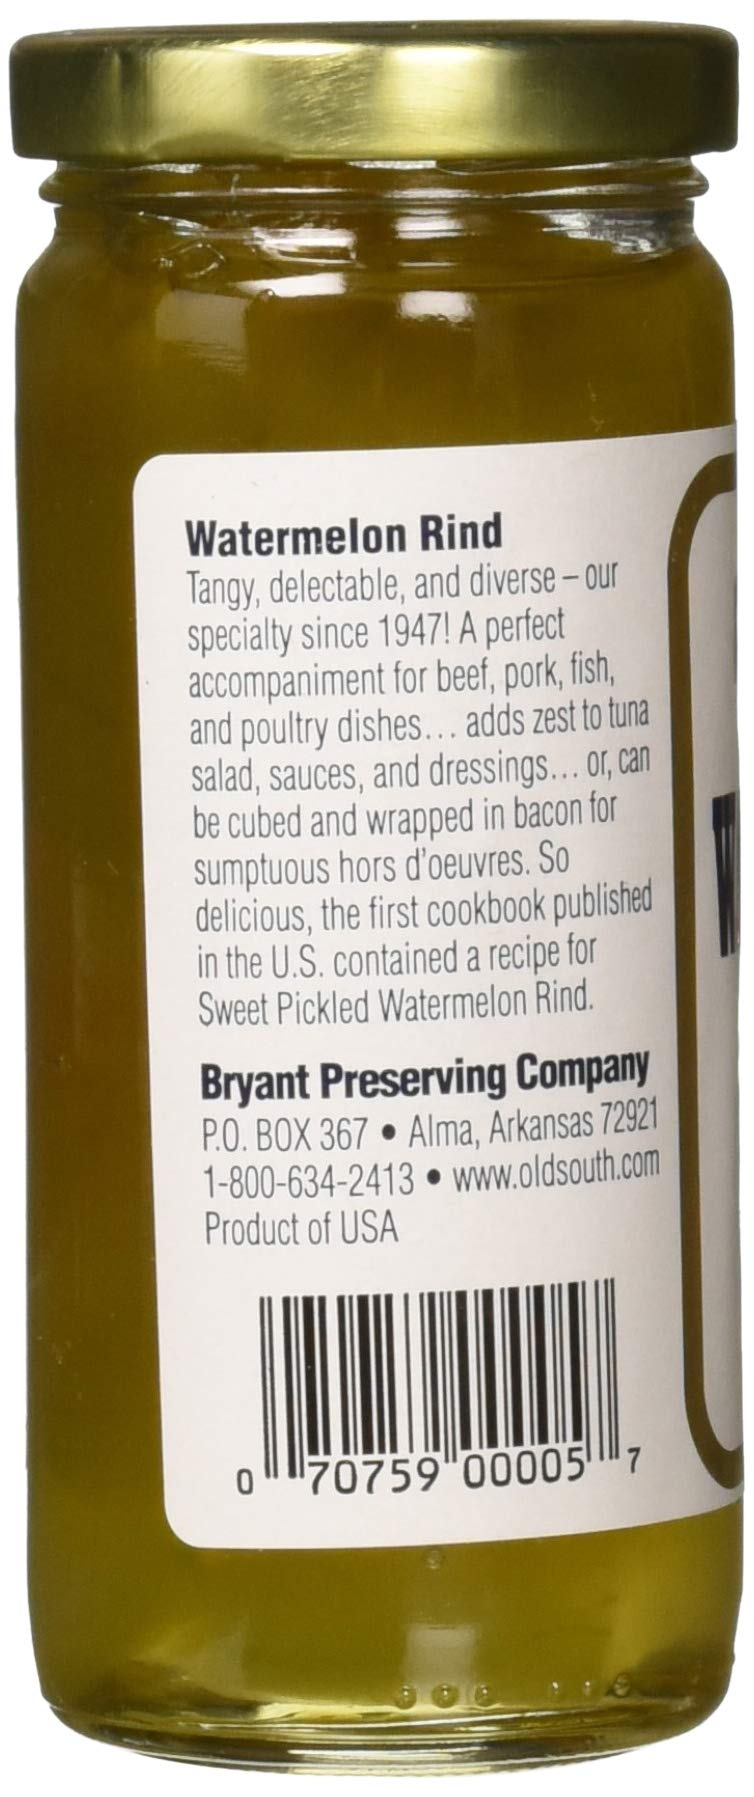 Old South Sweet Pickled Watermelon Rind 10 oz Jar (6 Pack) by Old South (Image #4)